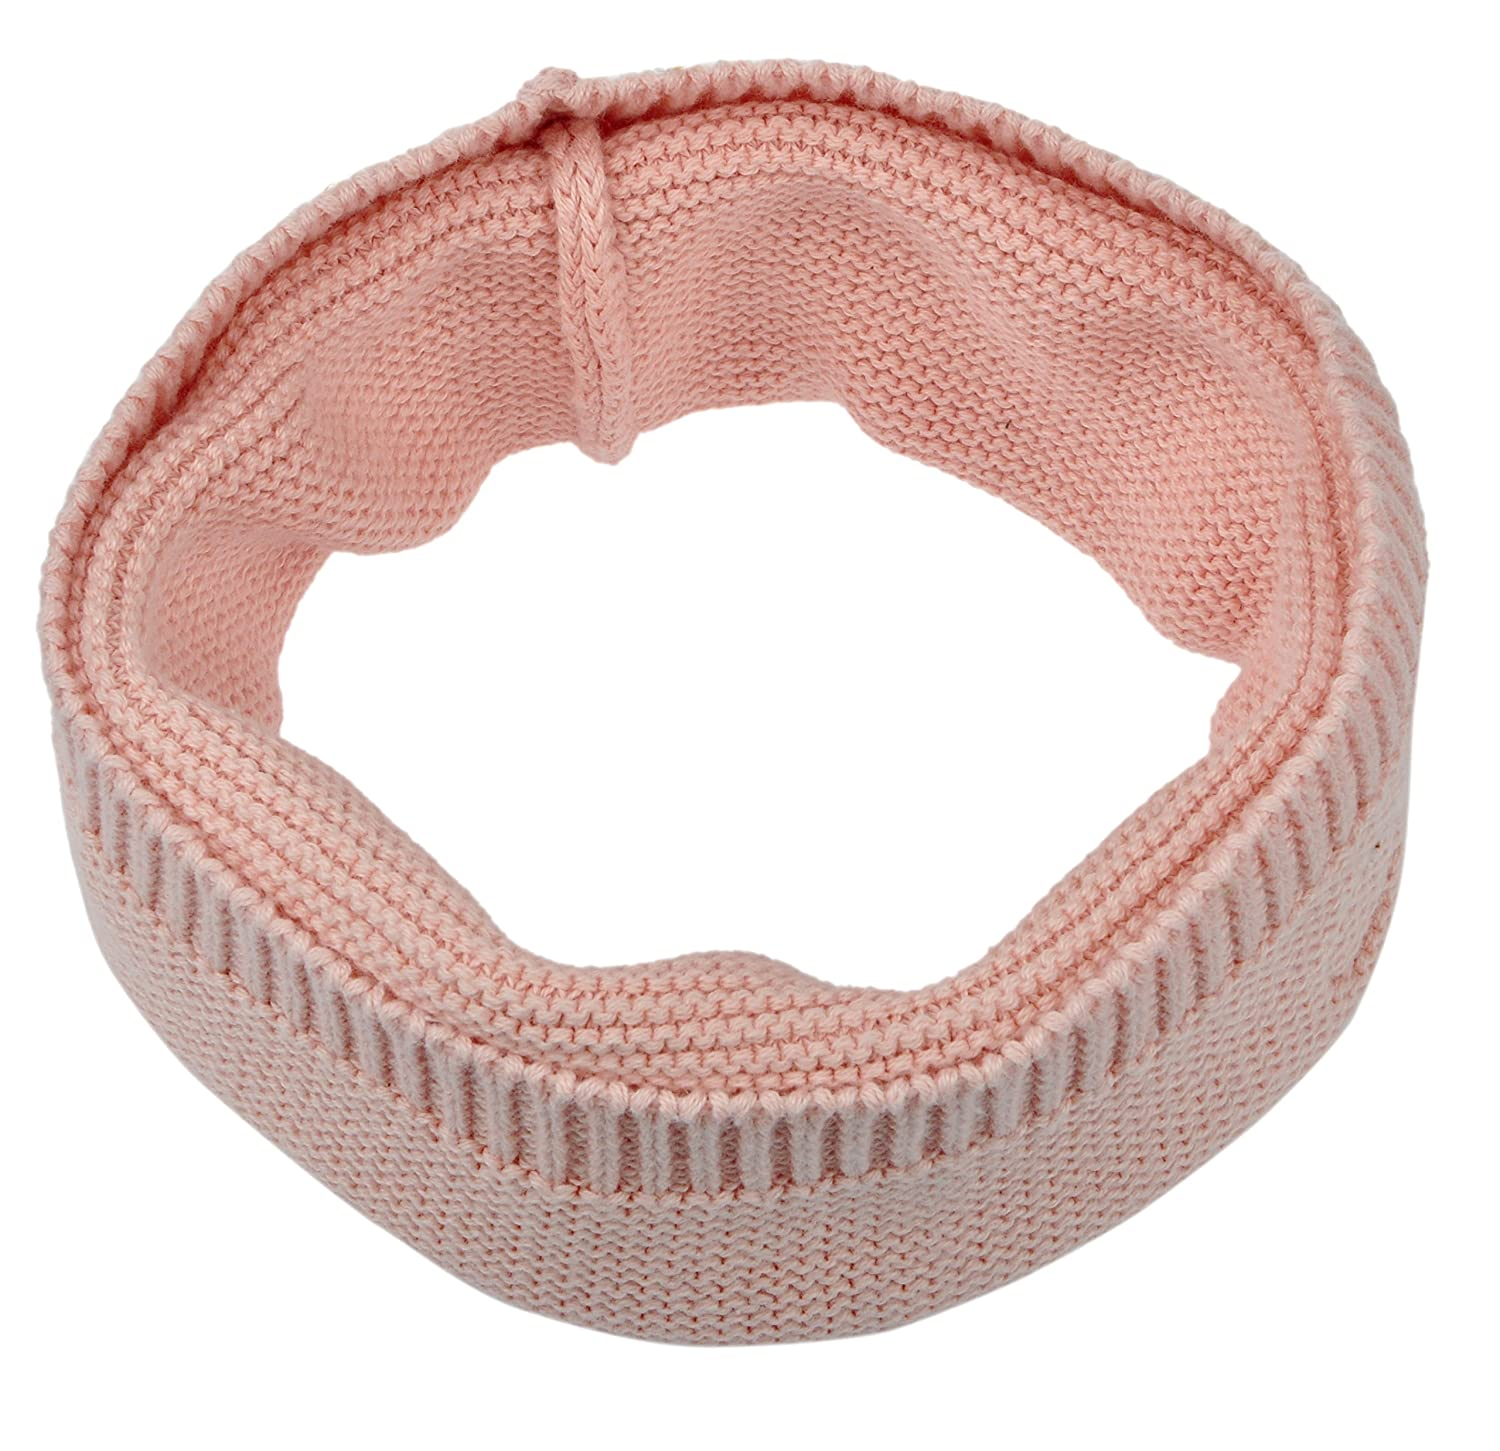 Joyinglife Baby Kid Circle Scarf Warm Soft Pure-Color Knit Neck Warmer Pink jtnew1-035-Pink